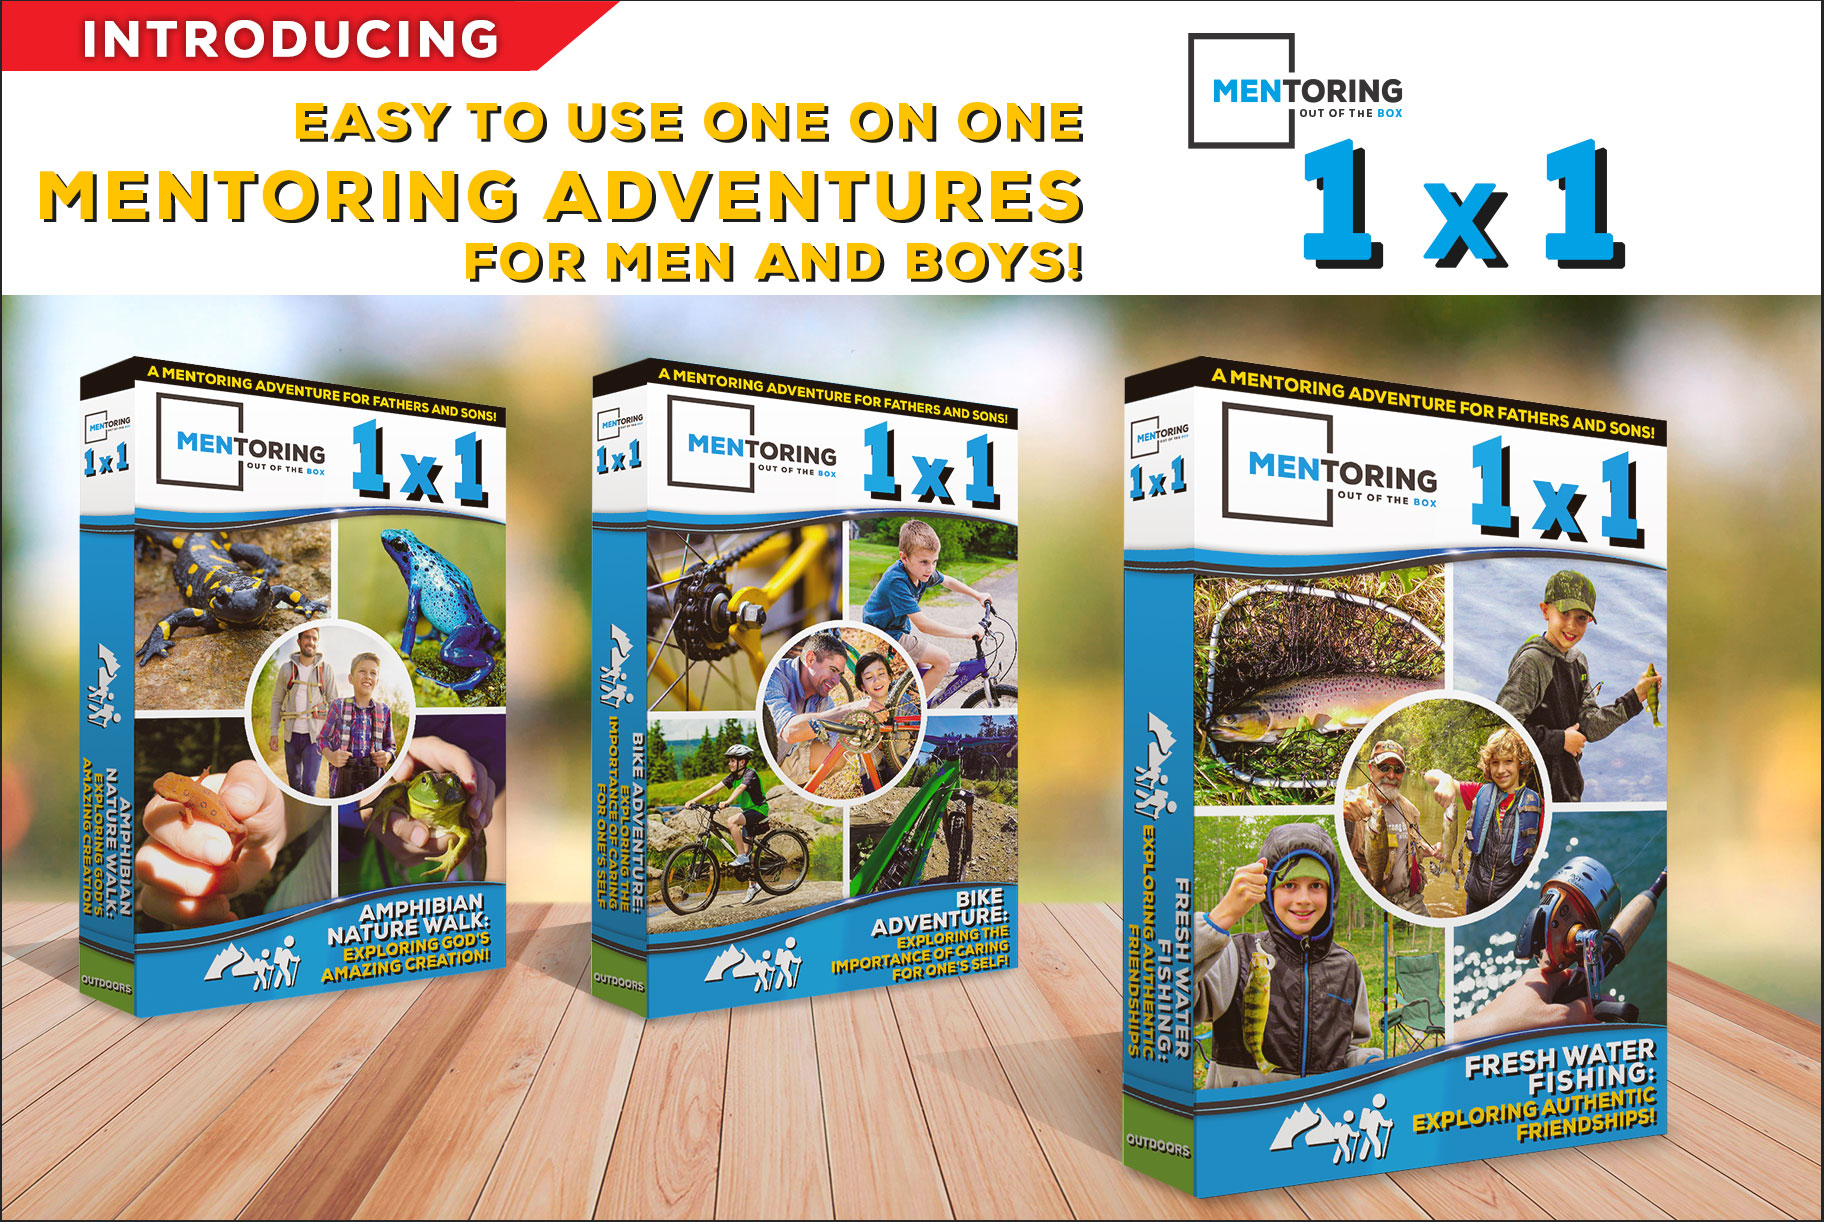 Mentoring out of the Box - Hiking Kit is for up to (5) boys to go on a hiking adventure!